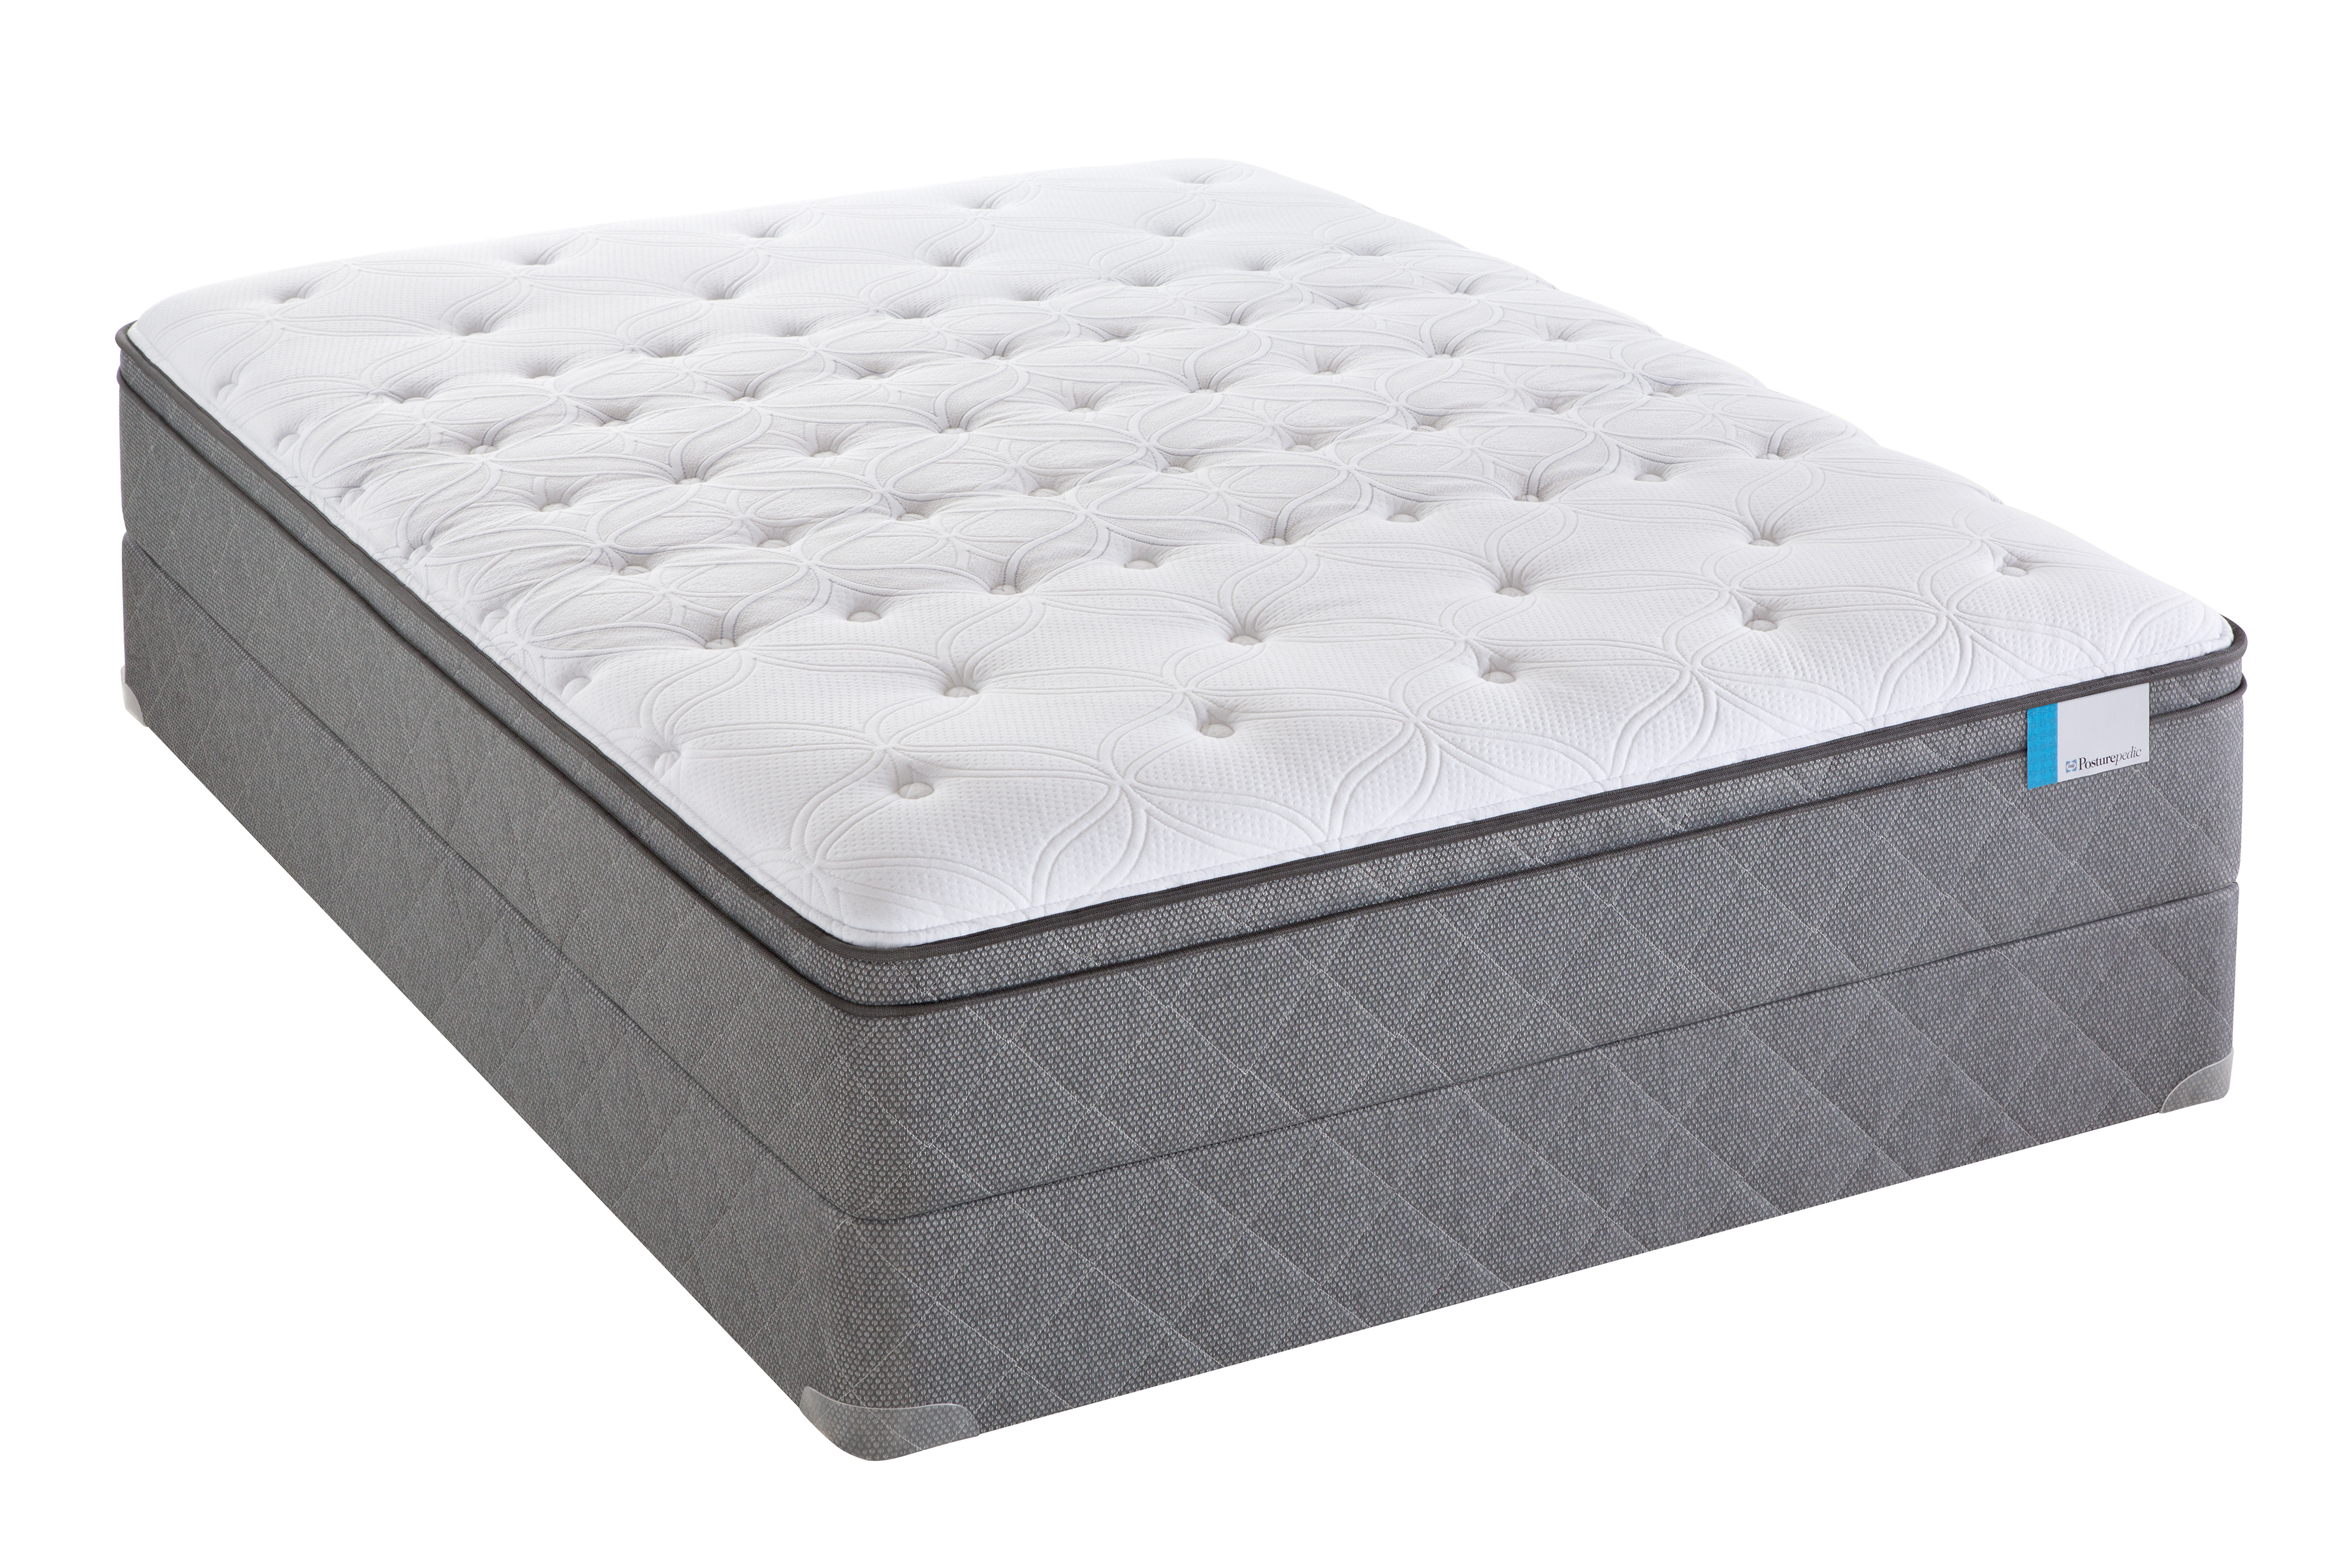 Sealy Posturepedic Lynnview Plush Euro Top King Mattress